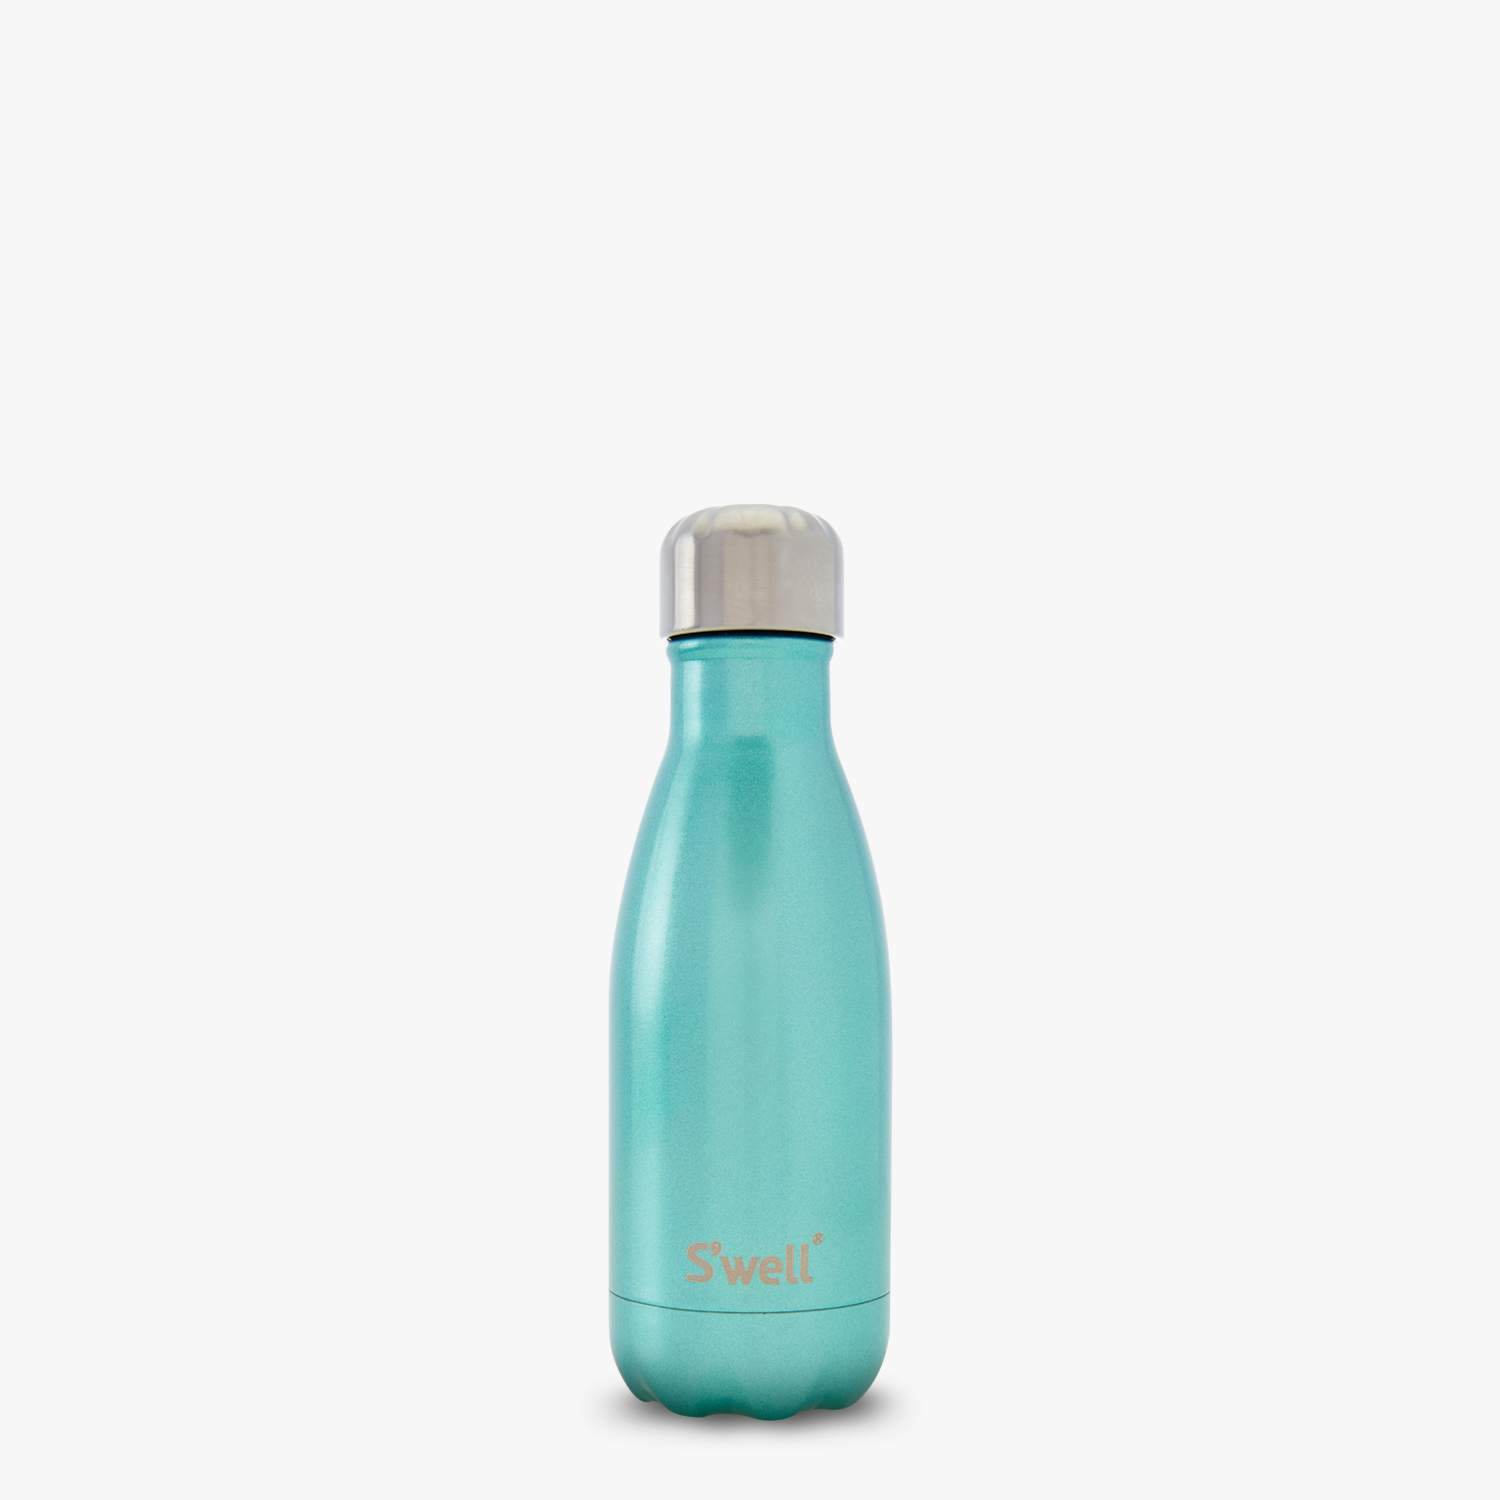 kids s'well bottle